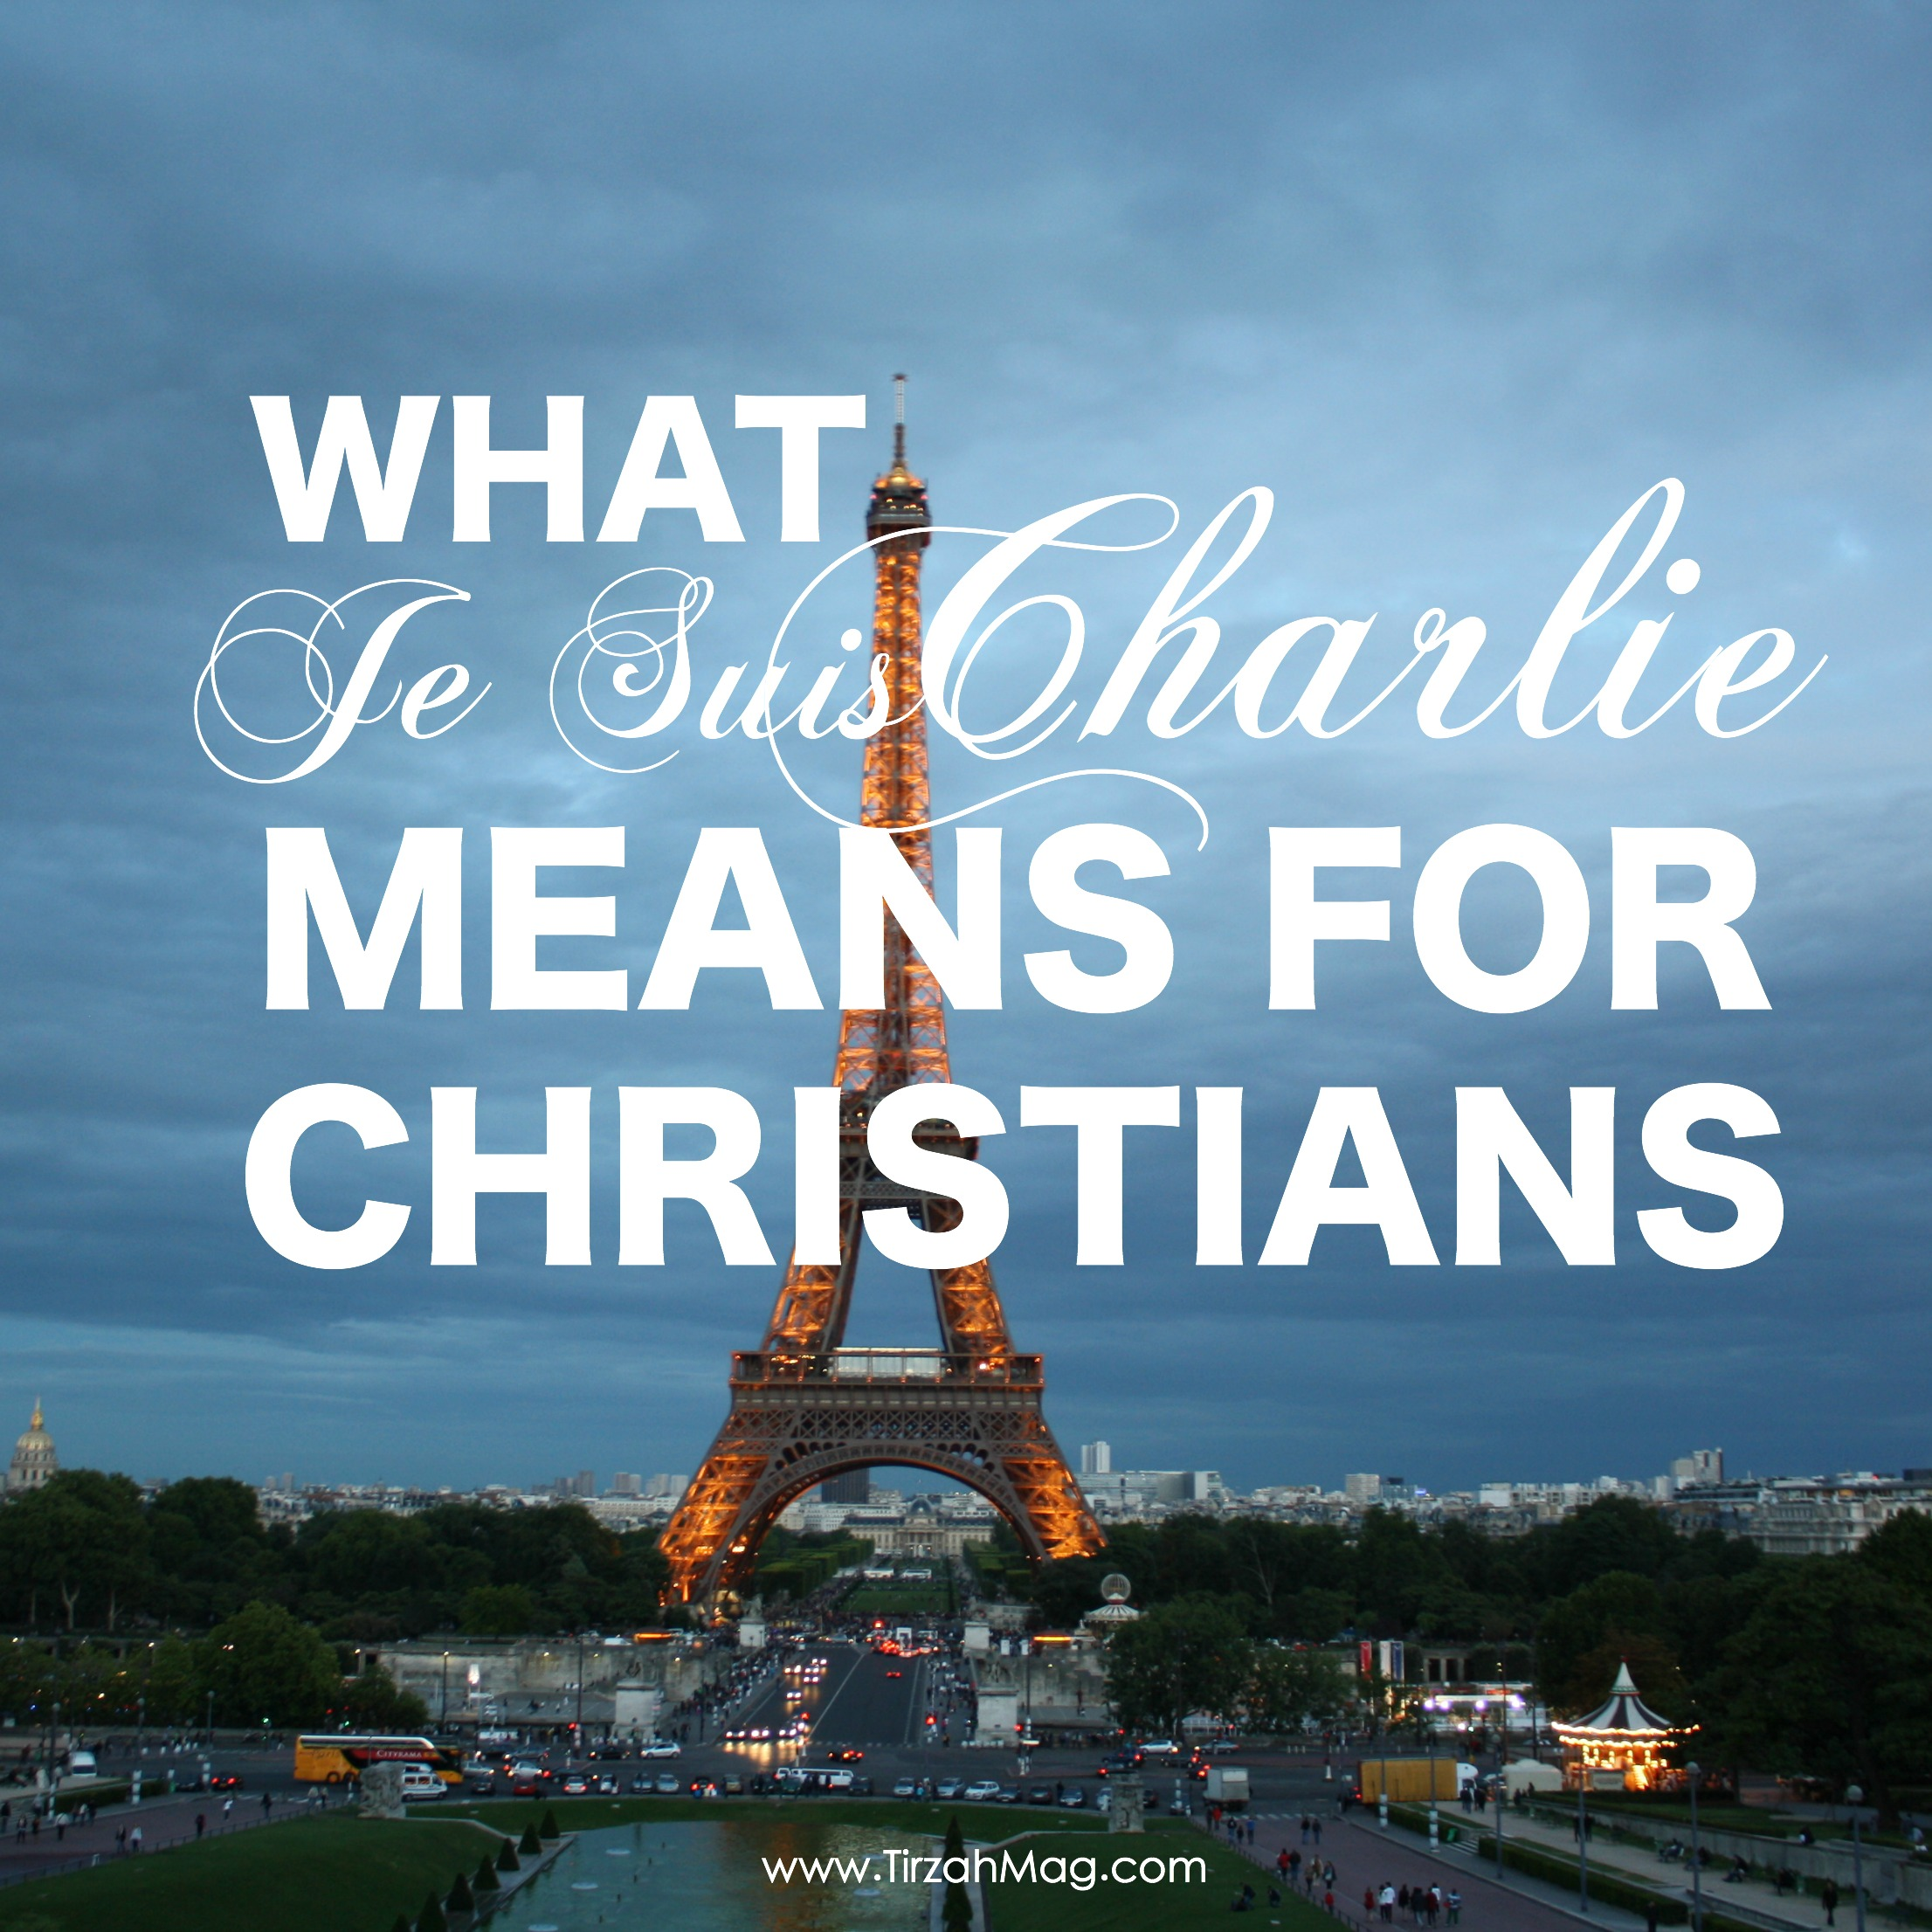 What Je Suis Charlie means for Christians via Tirzah Magazine